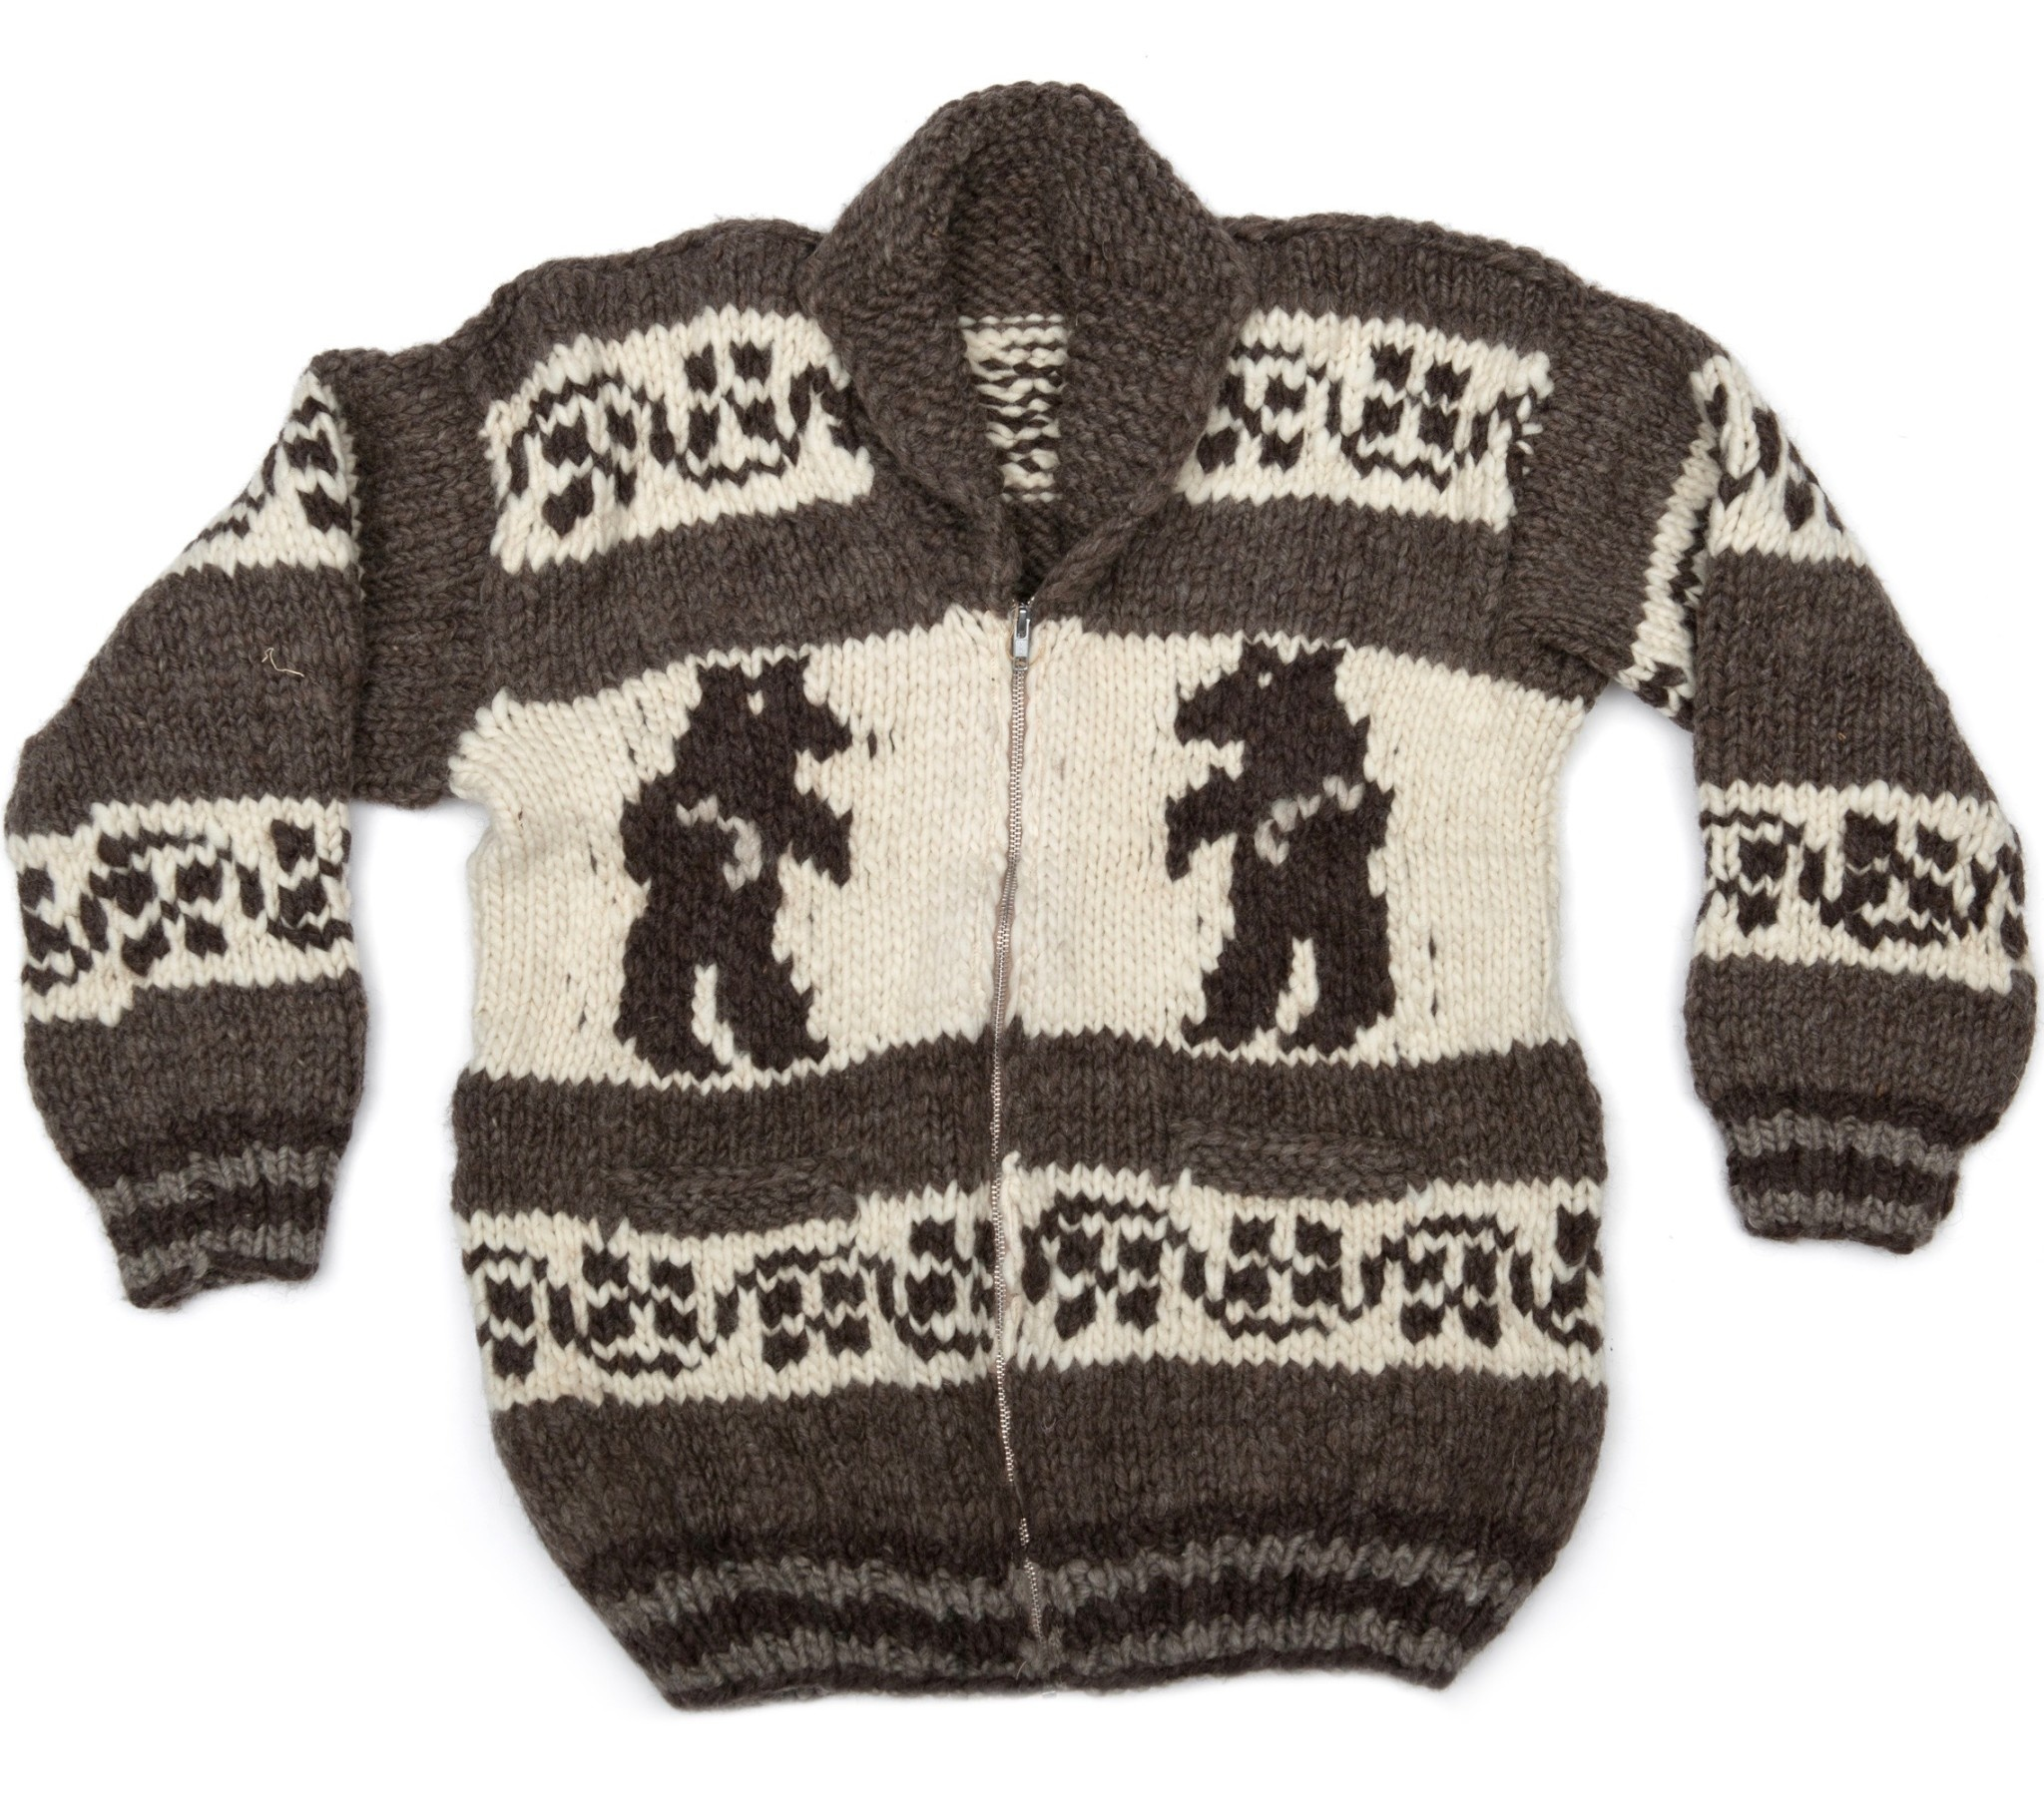 M/L Cowichan Sweater Bear design